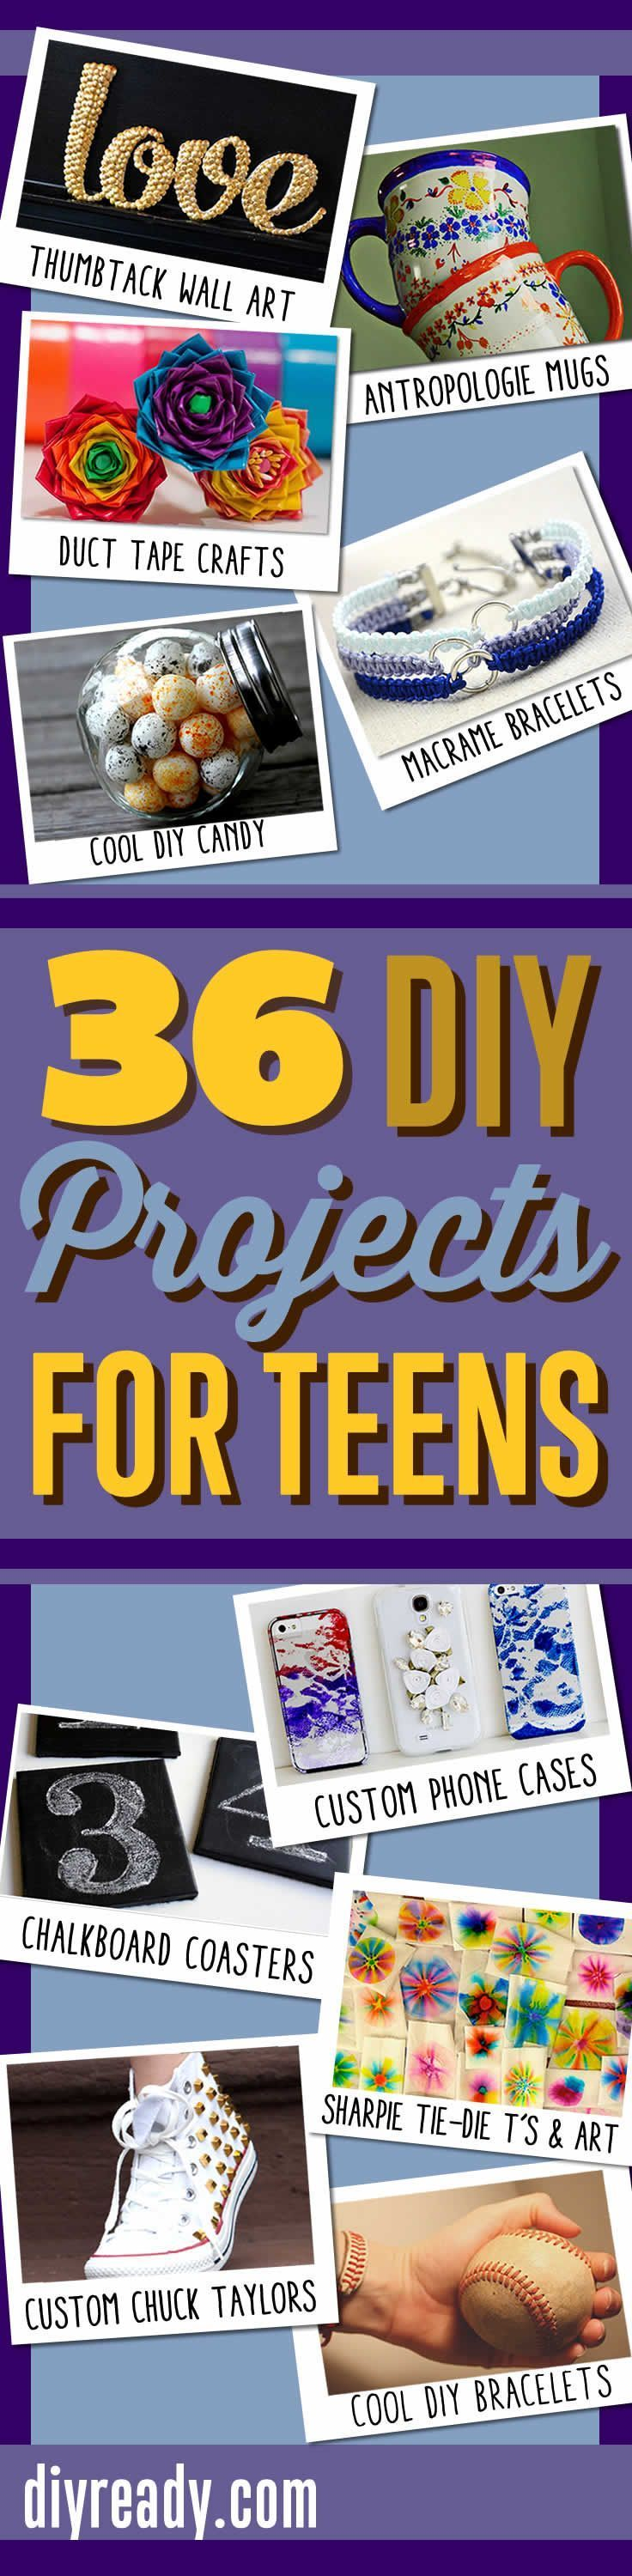 39 cool crafts for teens   diy ideas, teen and craft